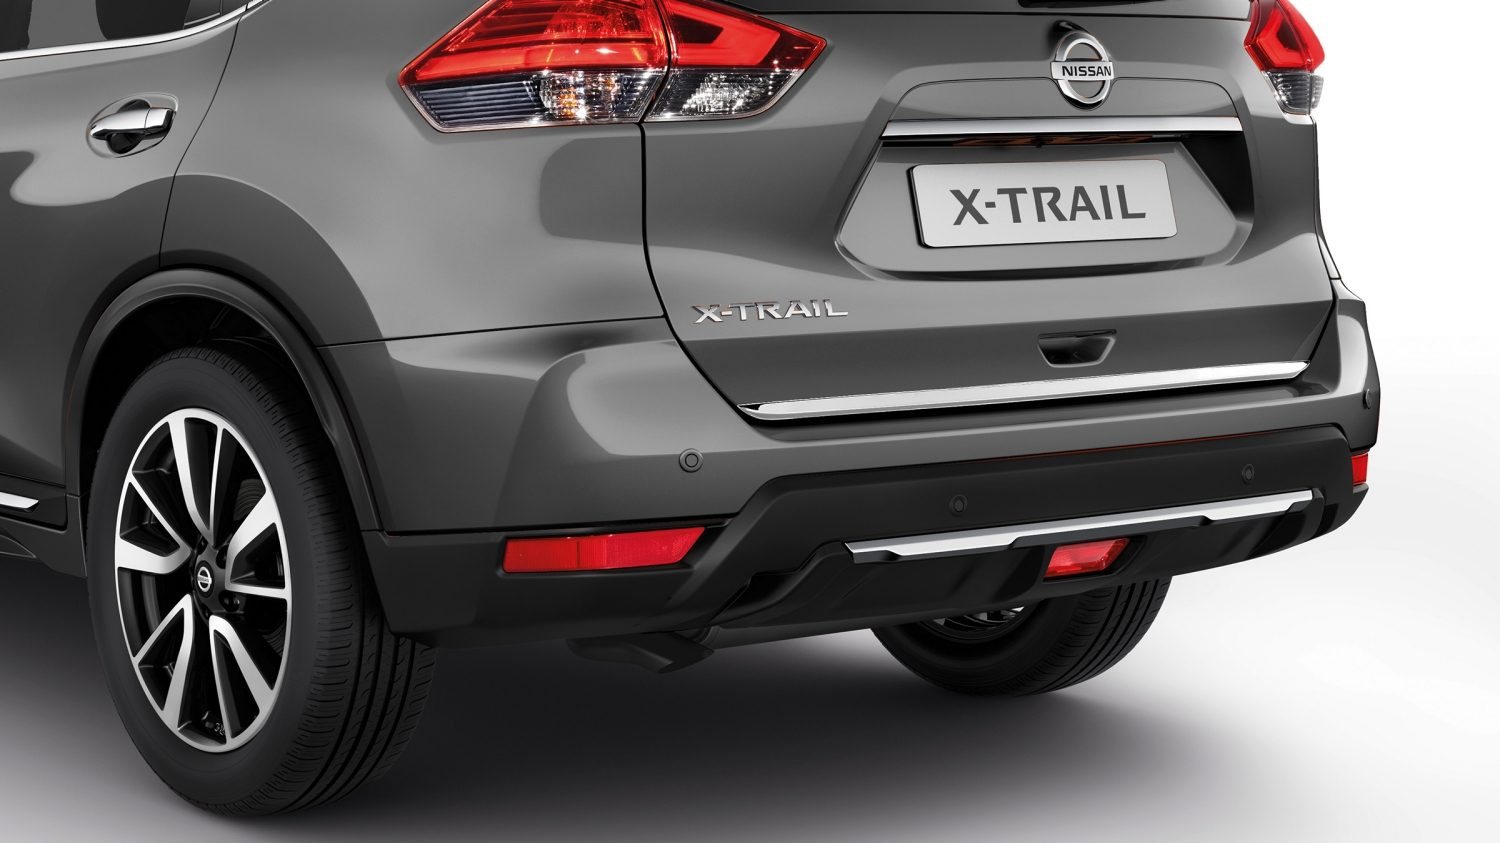 Baguette de coffre en chrome du Nissan X-TRAIL